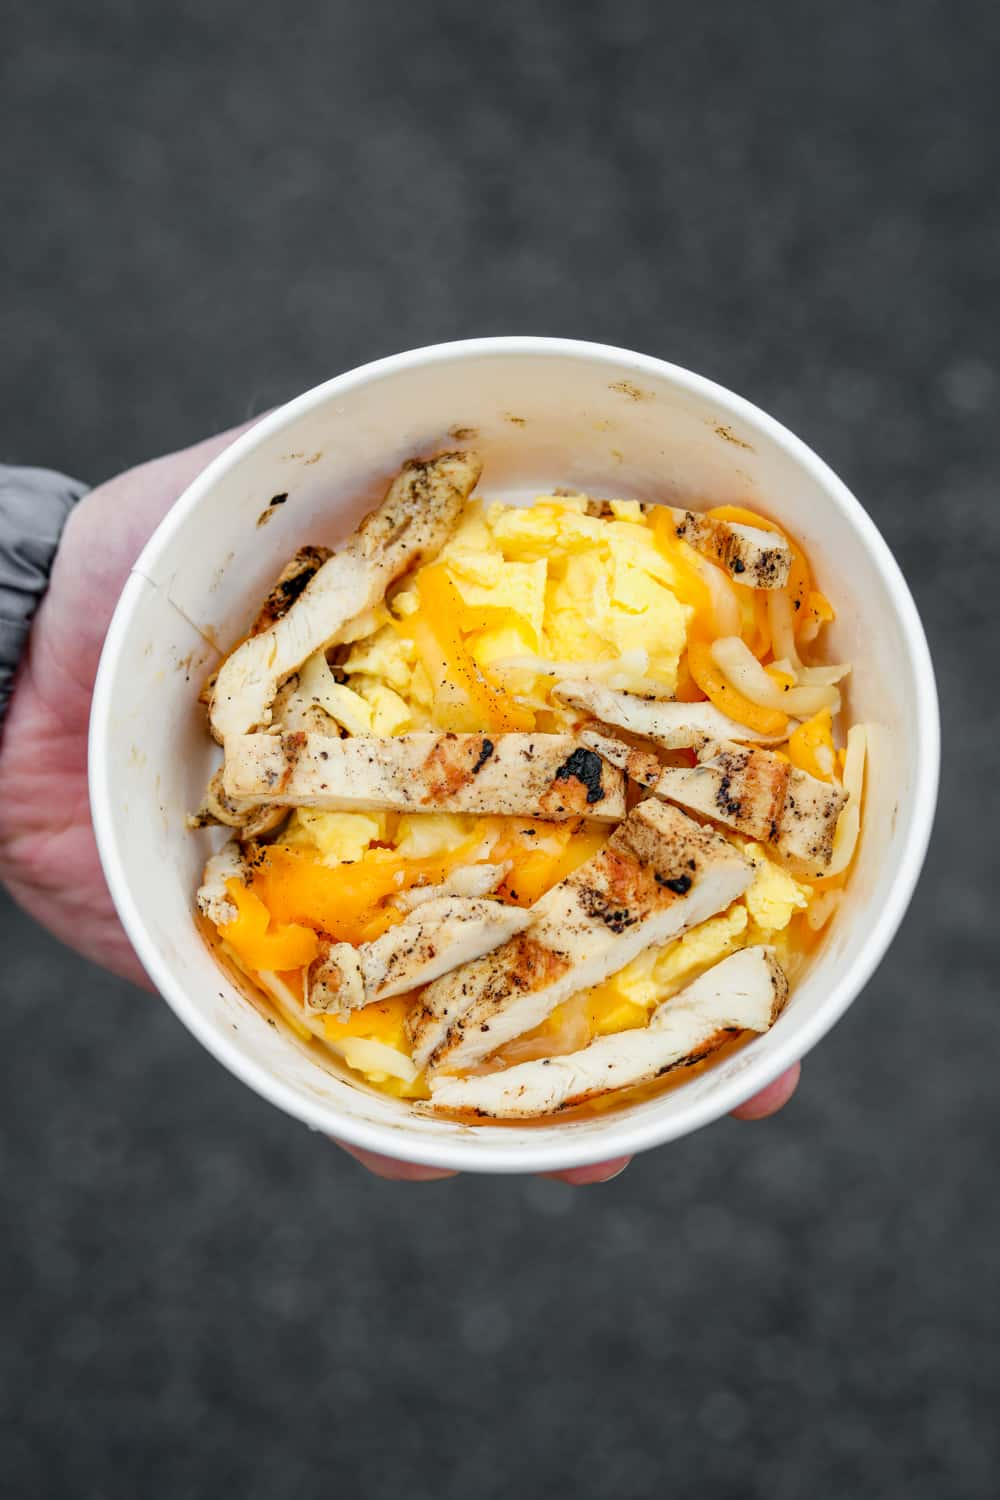 A hand holding a bowl filled with scrambled eggs Monterey and cheddar cheese and grilled chicken strips.